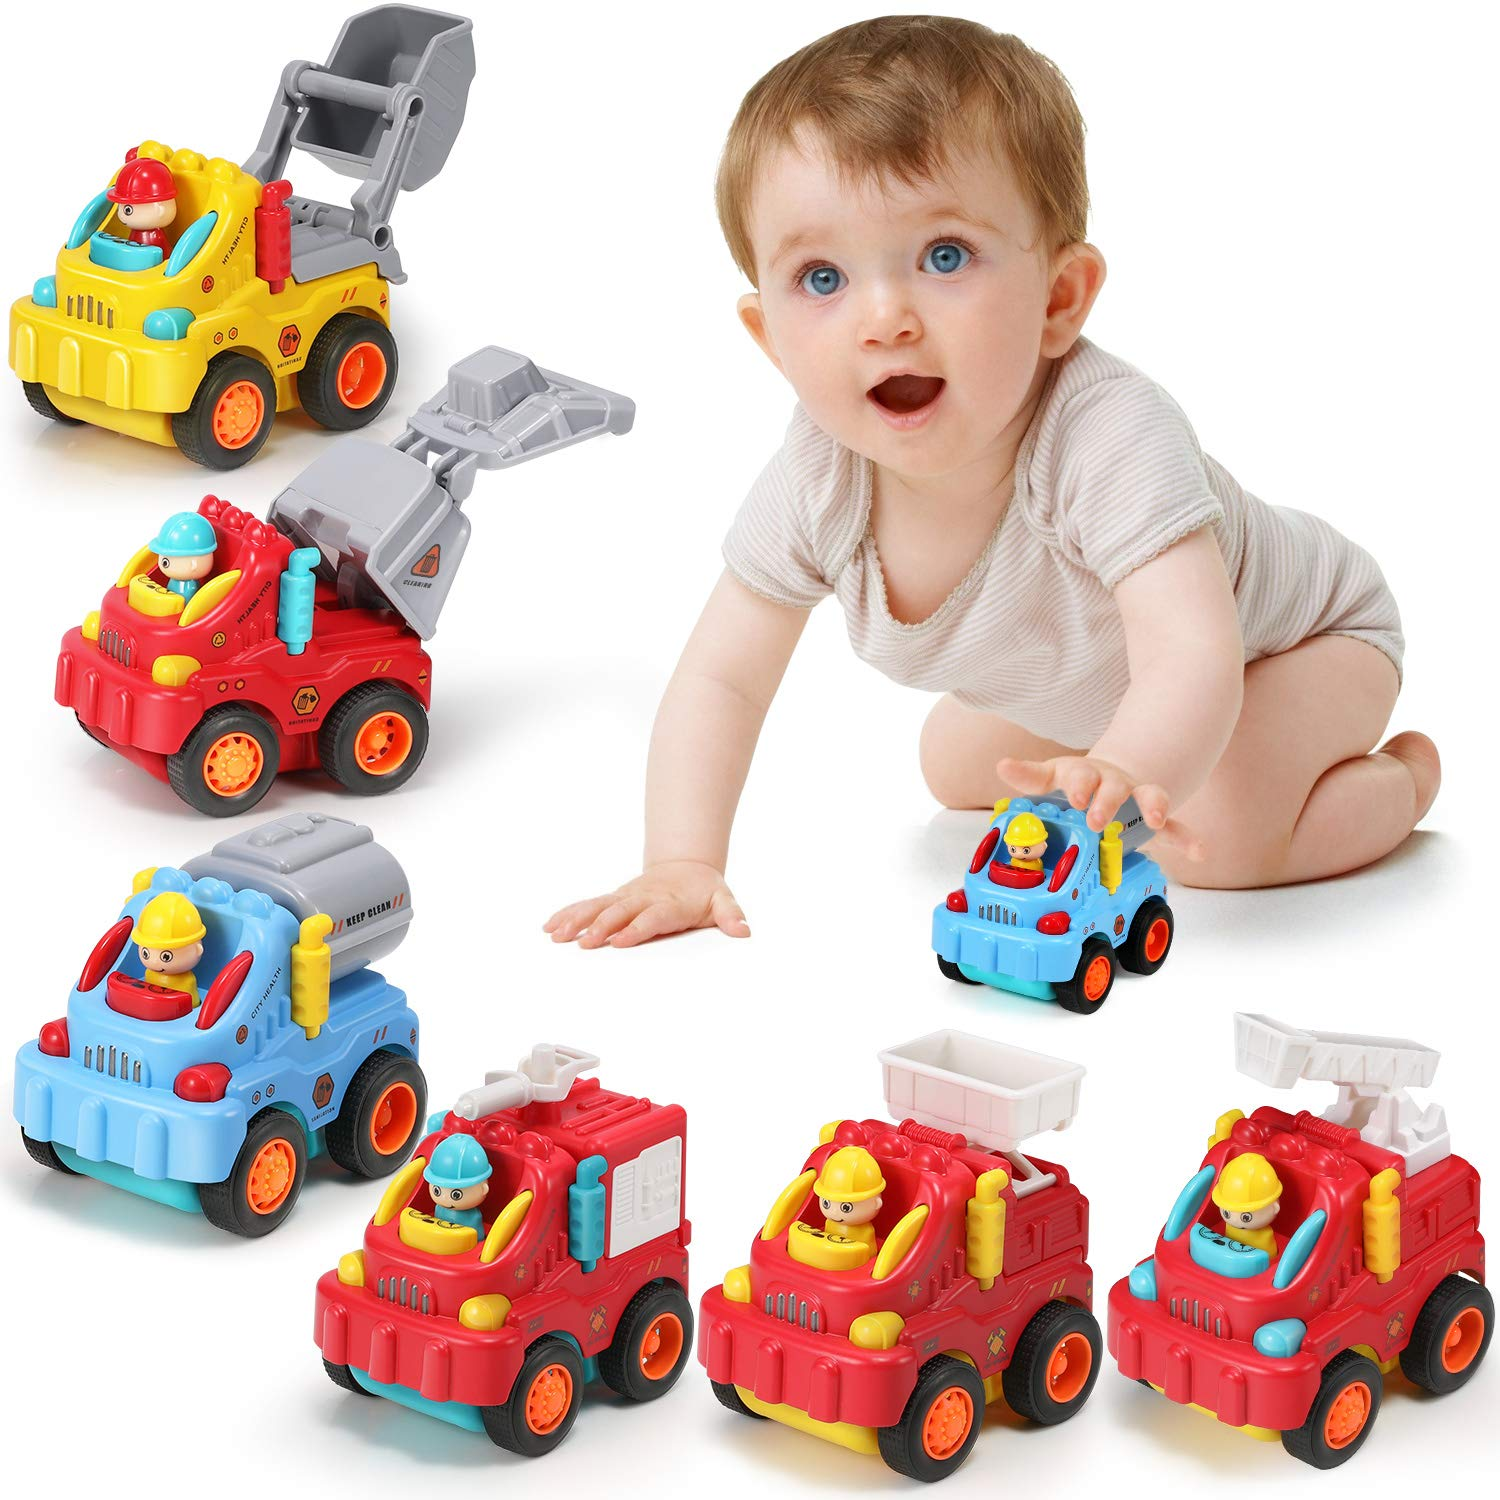 Pull Back Cars Mini Alloy Helicopter Boat Toy Play Set Metal Die Cast Vehicle for Babies,Boys,Toddlers and Kids Party Favors Age 1+ Geyiie Cartoon Cars Toy 6 Pack